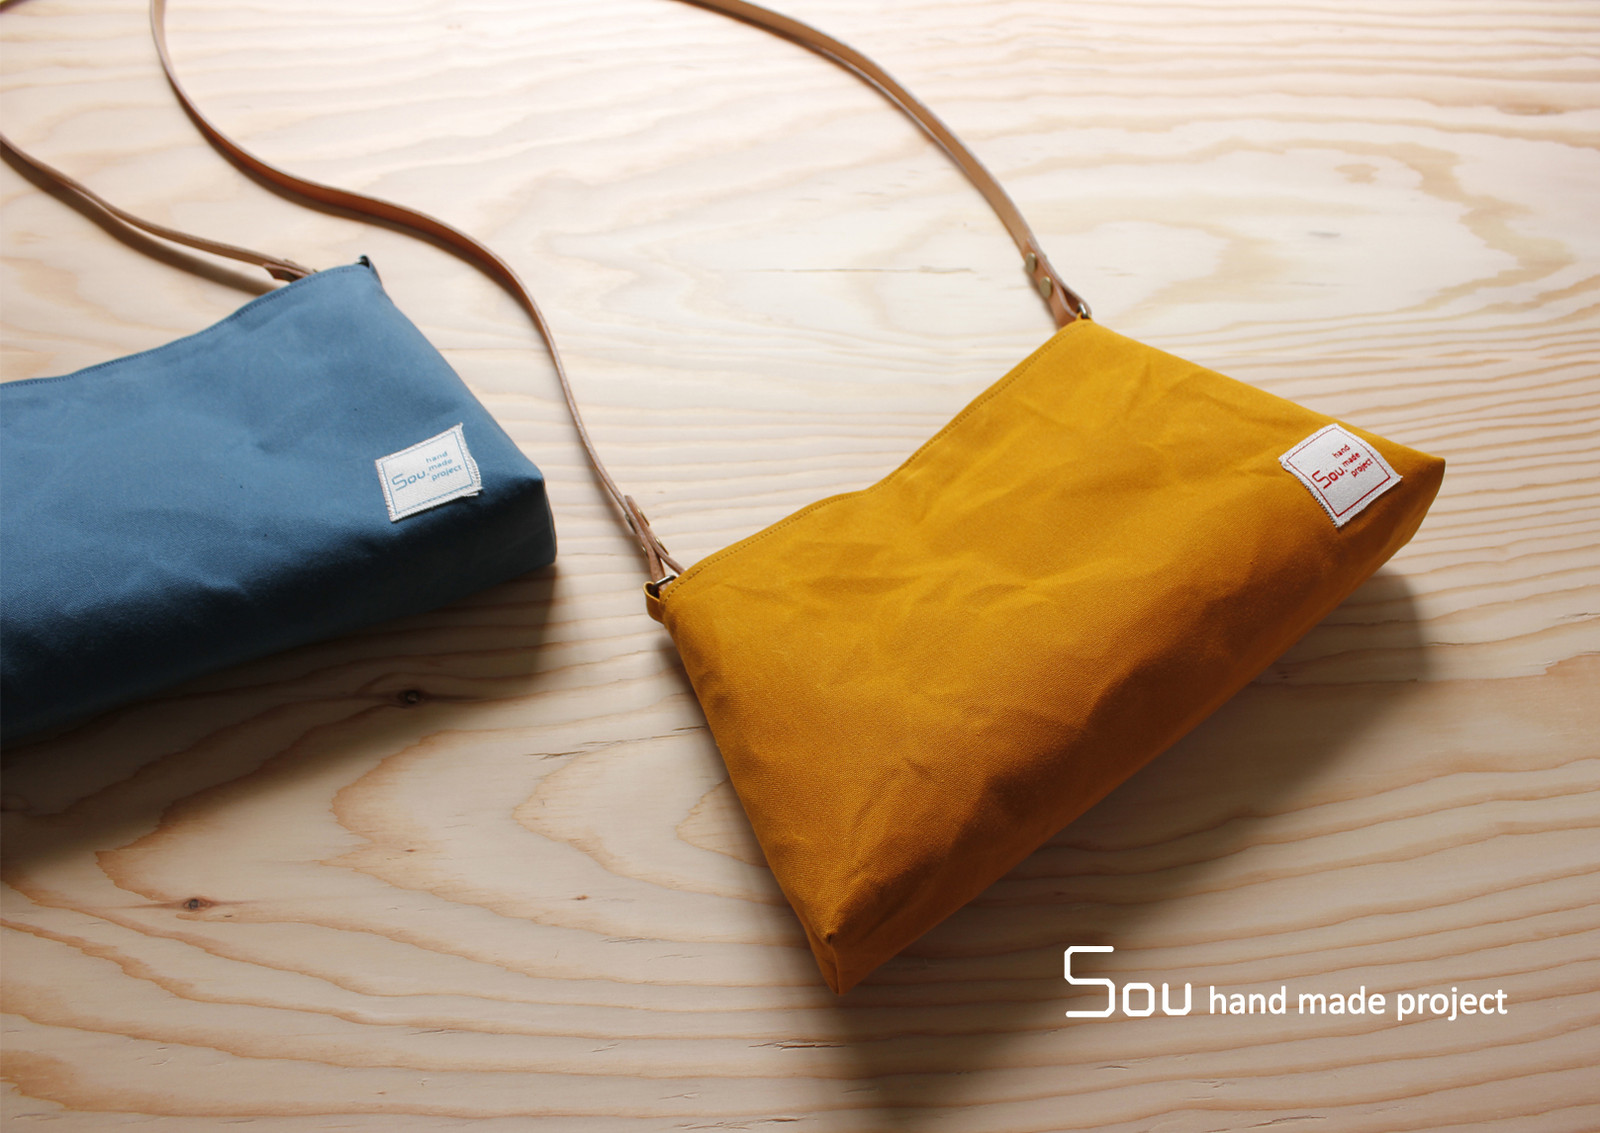 Sou_hand_made_project